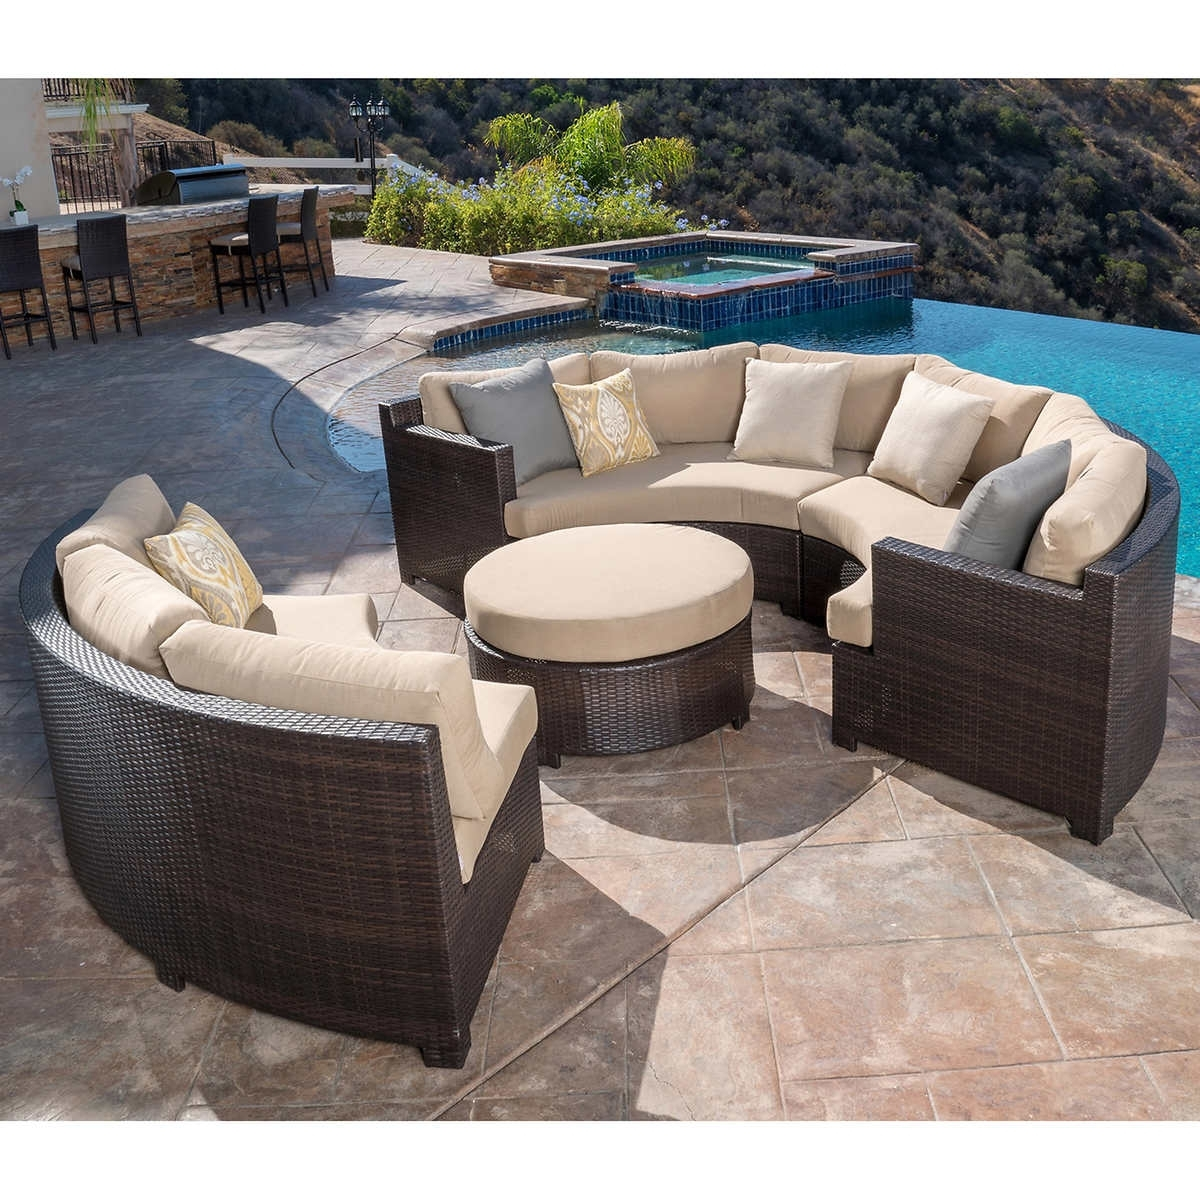 Furniture: Patio Astounding Costco Outdoor Costco Patio Furniture With Widely Used Costco Patio Conversation Sets (View 7 of 20)